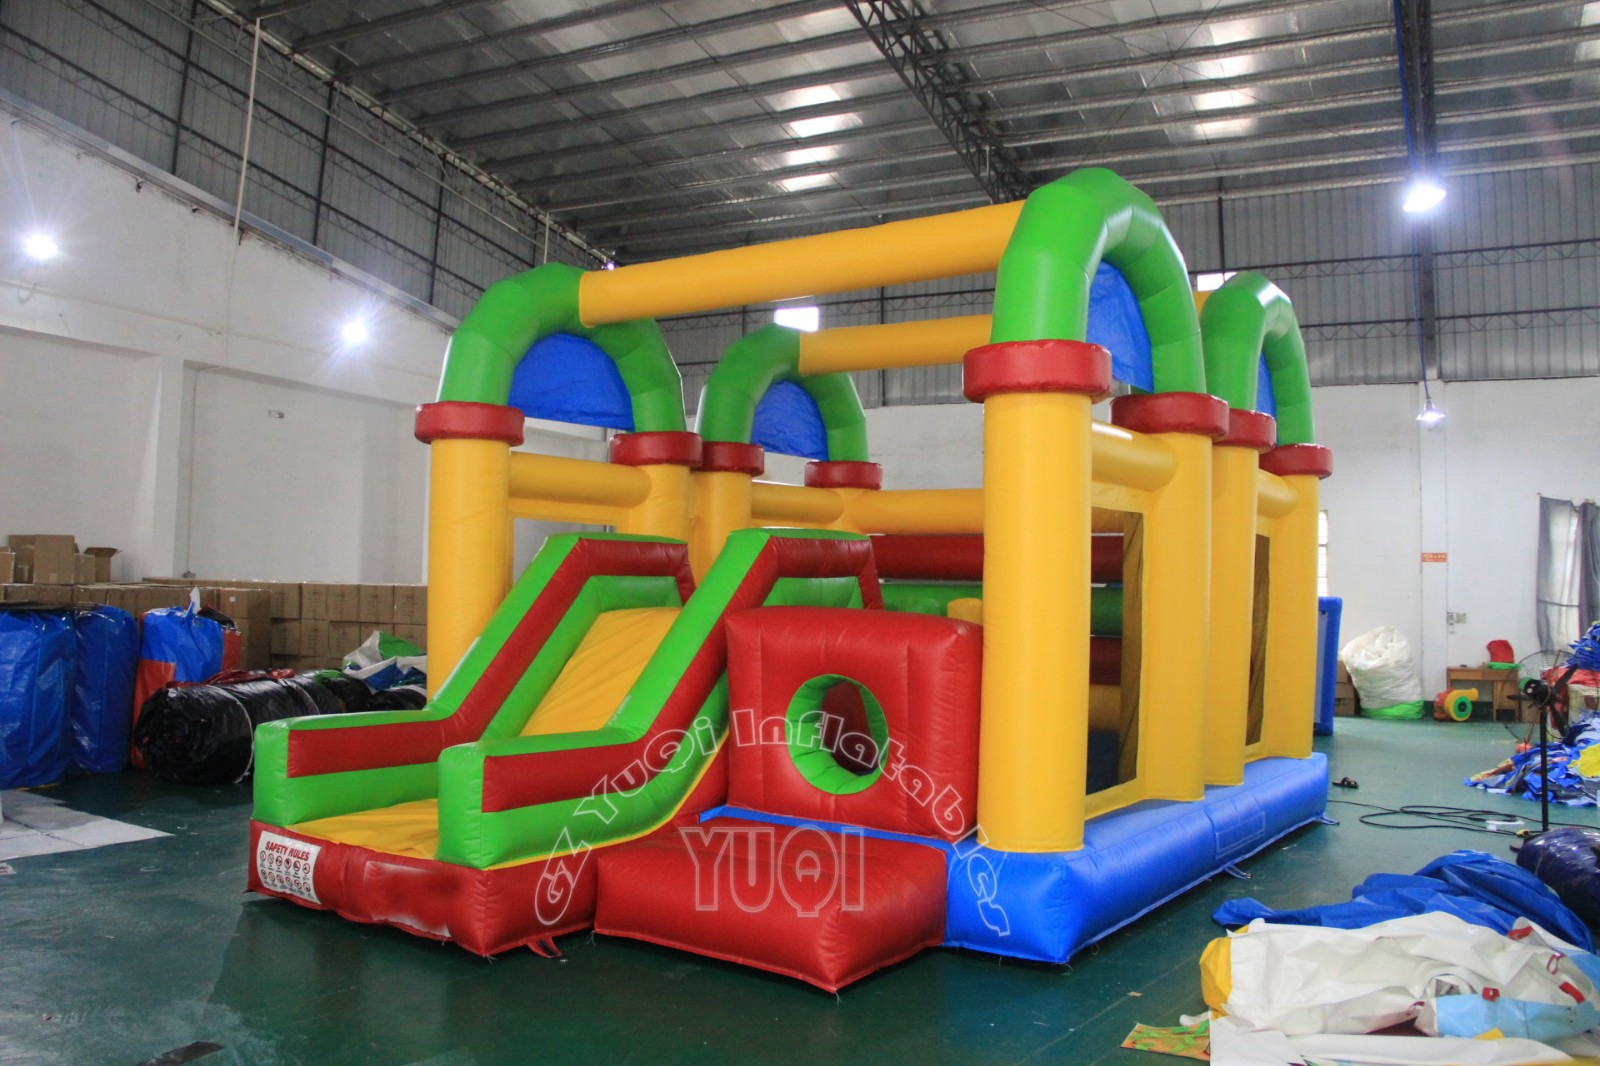 YUQI-High-quality Buy Bounce House Double Tunnel Slide Combo